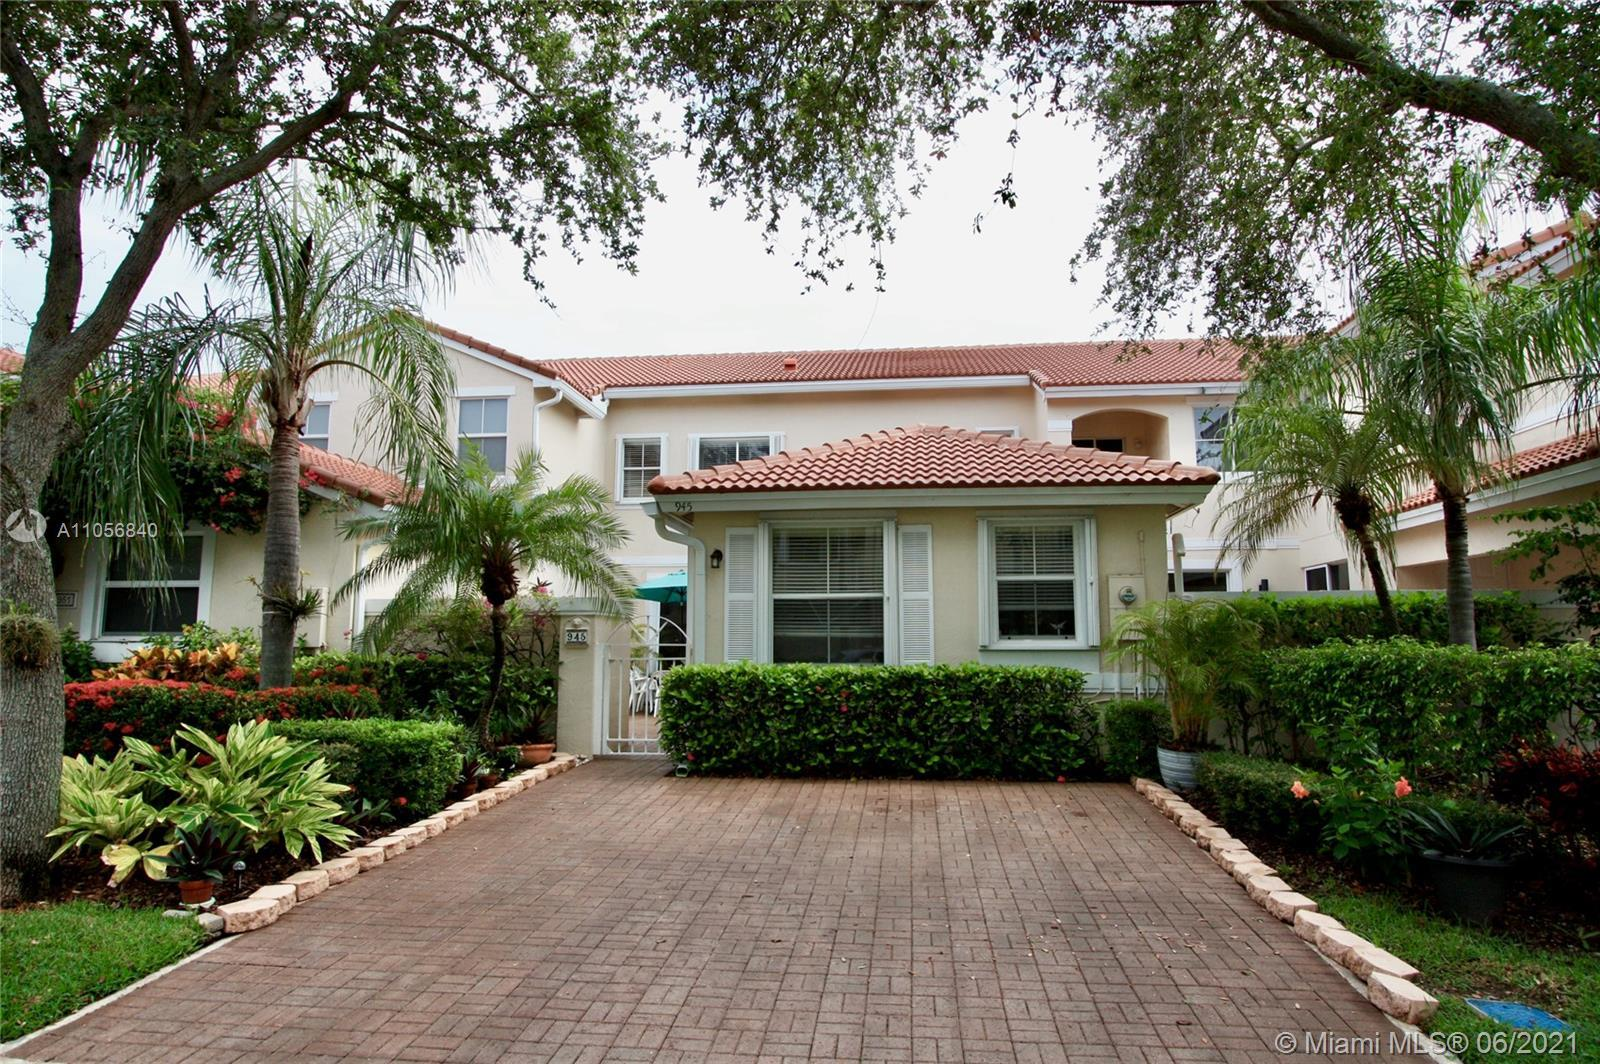 Beautiful townhome in gated community near beach & Downtown Hollywood is move-in ready. The eat-in k